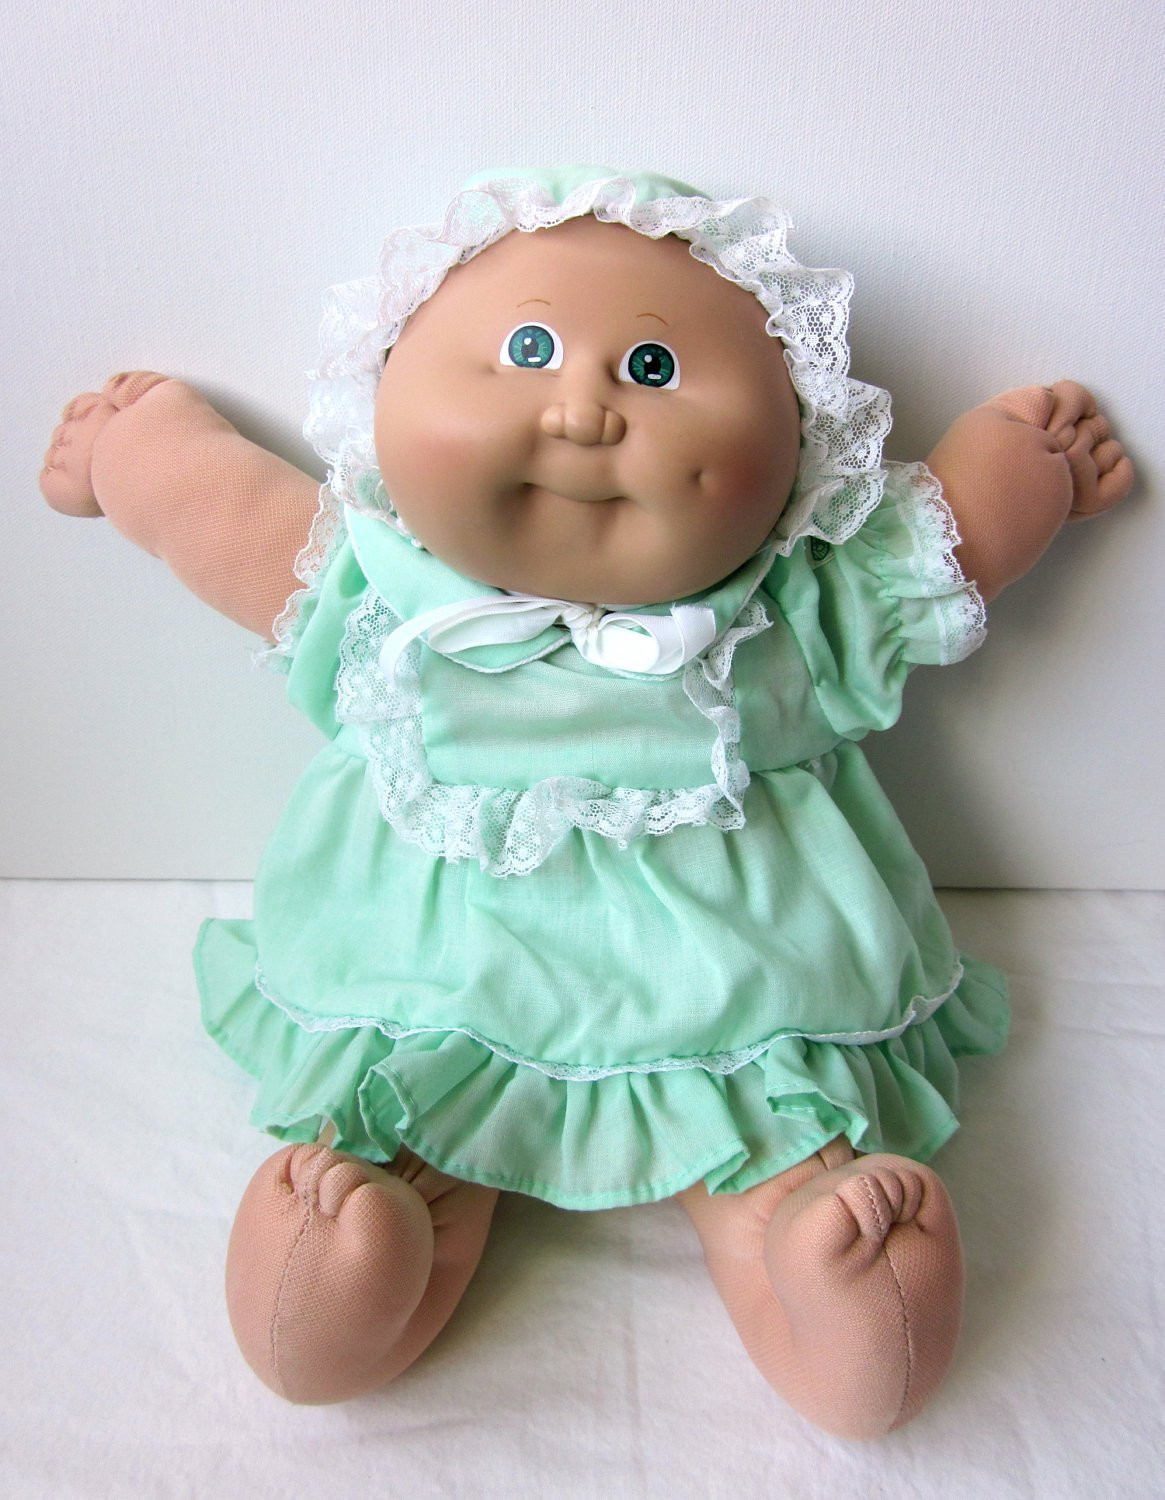 Elegant Vintage Cabbage Patch Kid Preemie Doll Blond Green Eyes Old Cabbage Patch Doll Of Wonderful 47 Ideas Old Cabbage Patch Doll